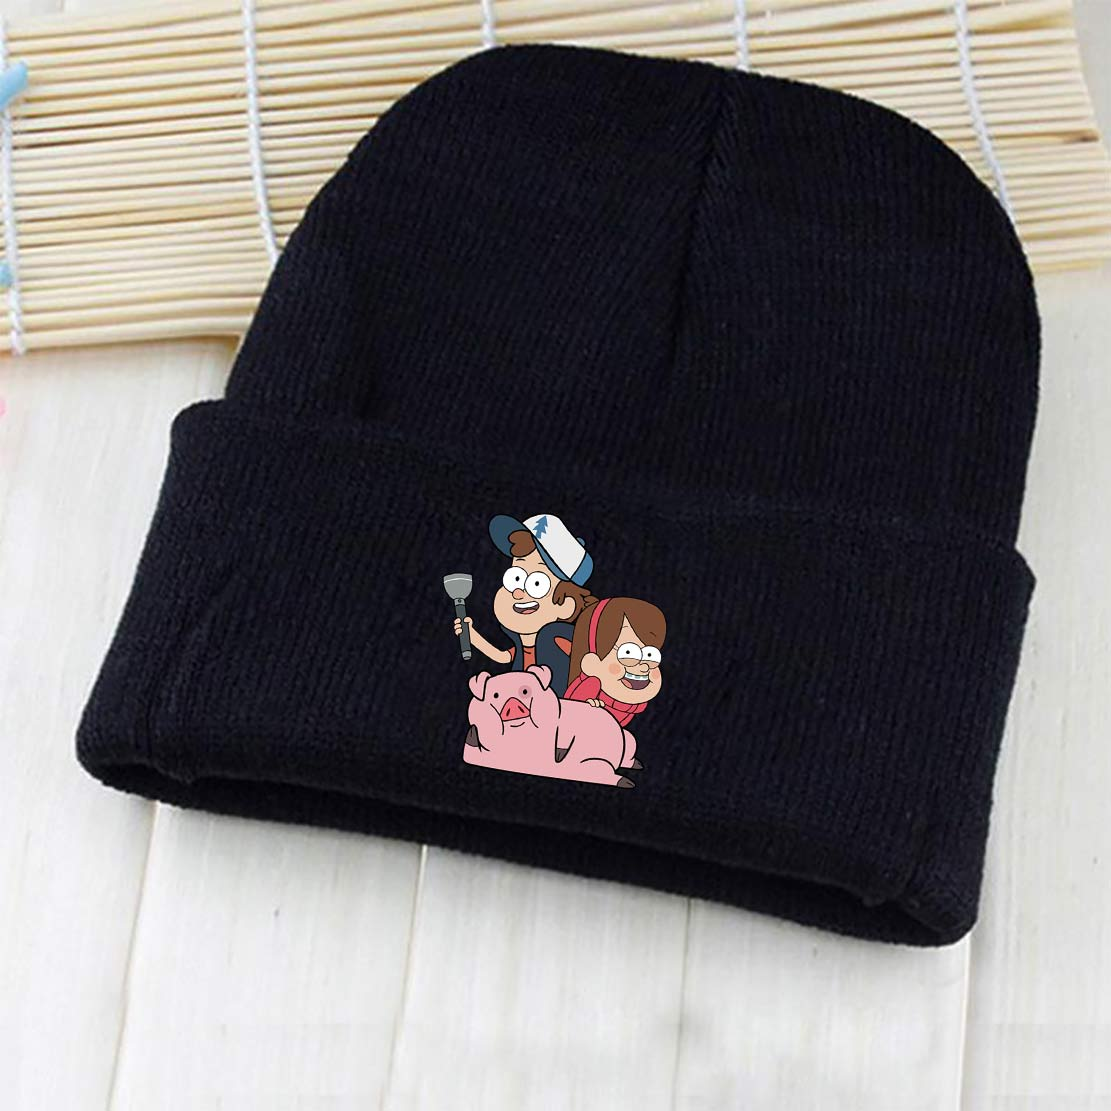 Wellcomics Anime Gravity Falls Dipper Mabel Pines Waddles Bill Cipher Symbol Skullies Beanie Knitted Hat Cap Cosplay Costume New